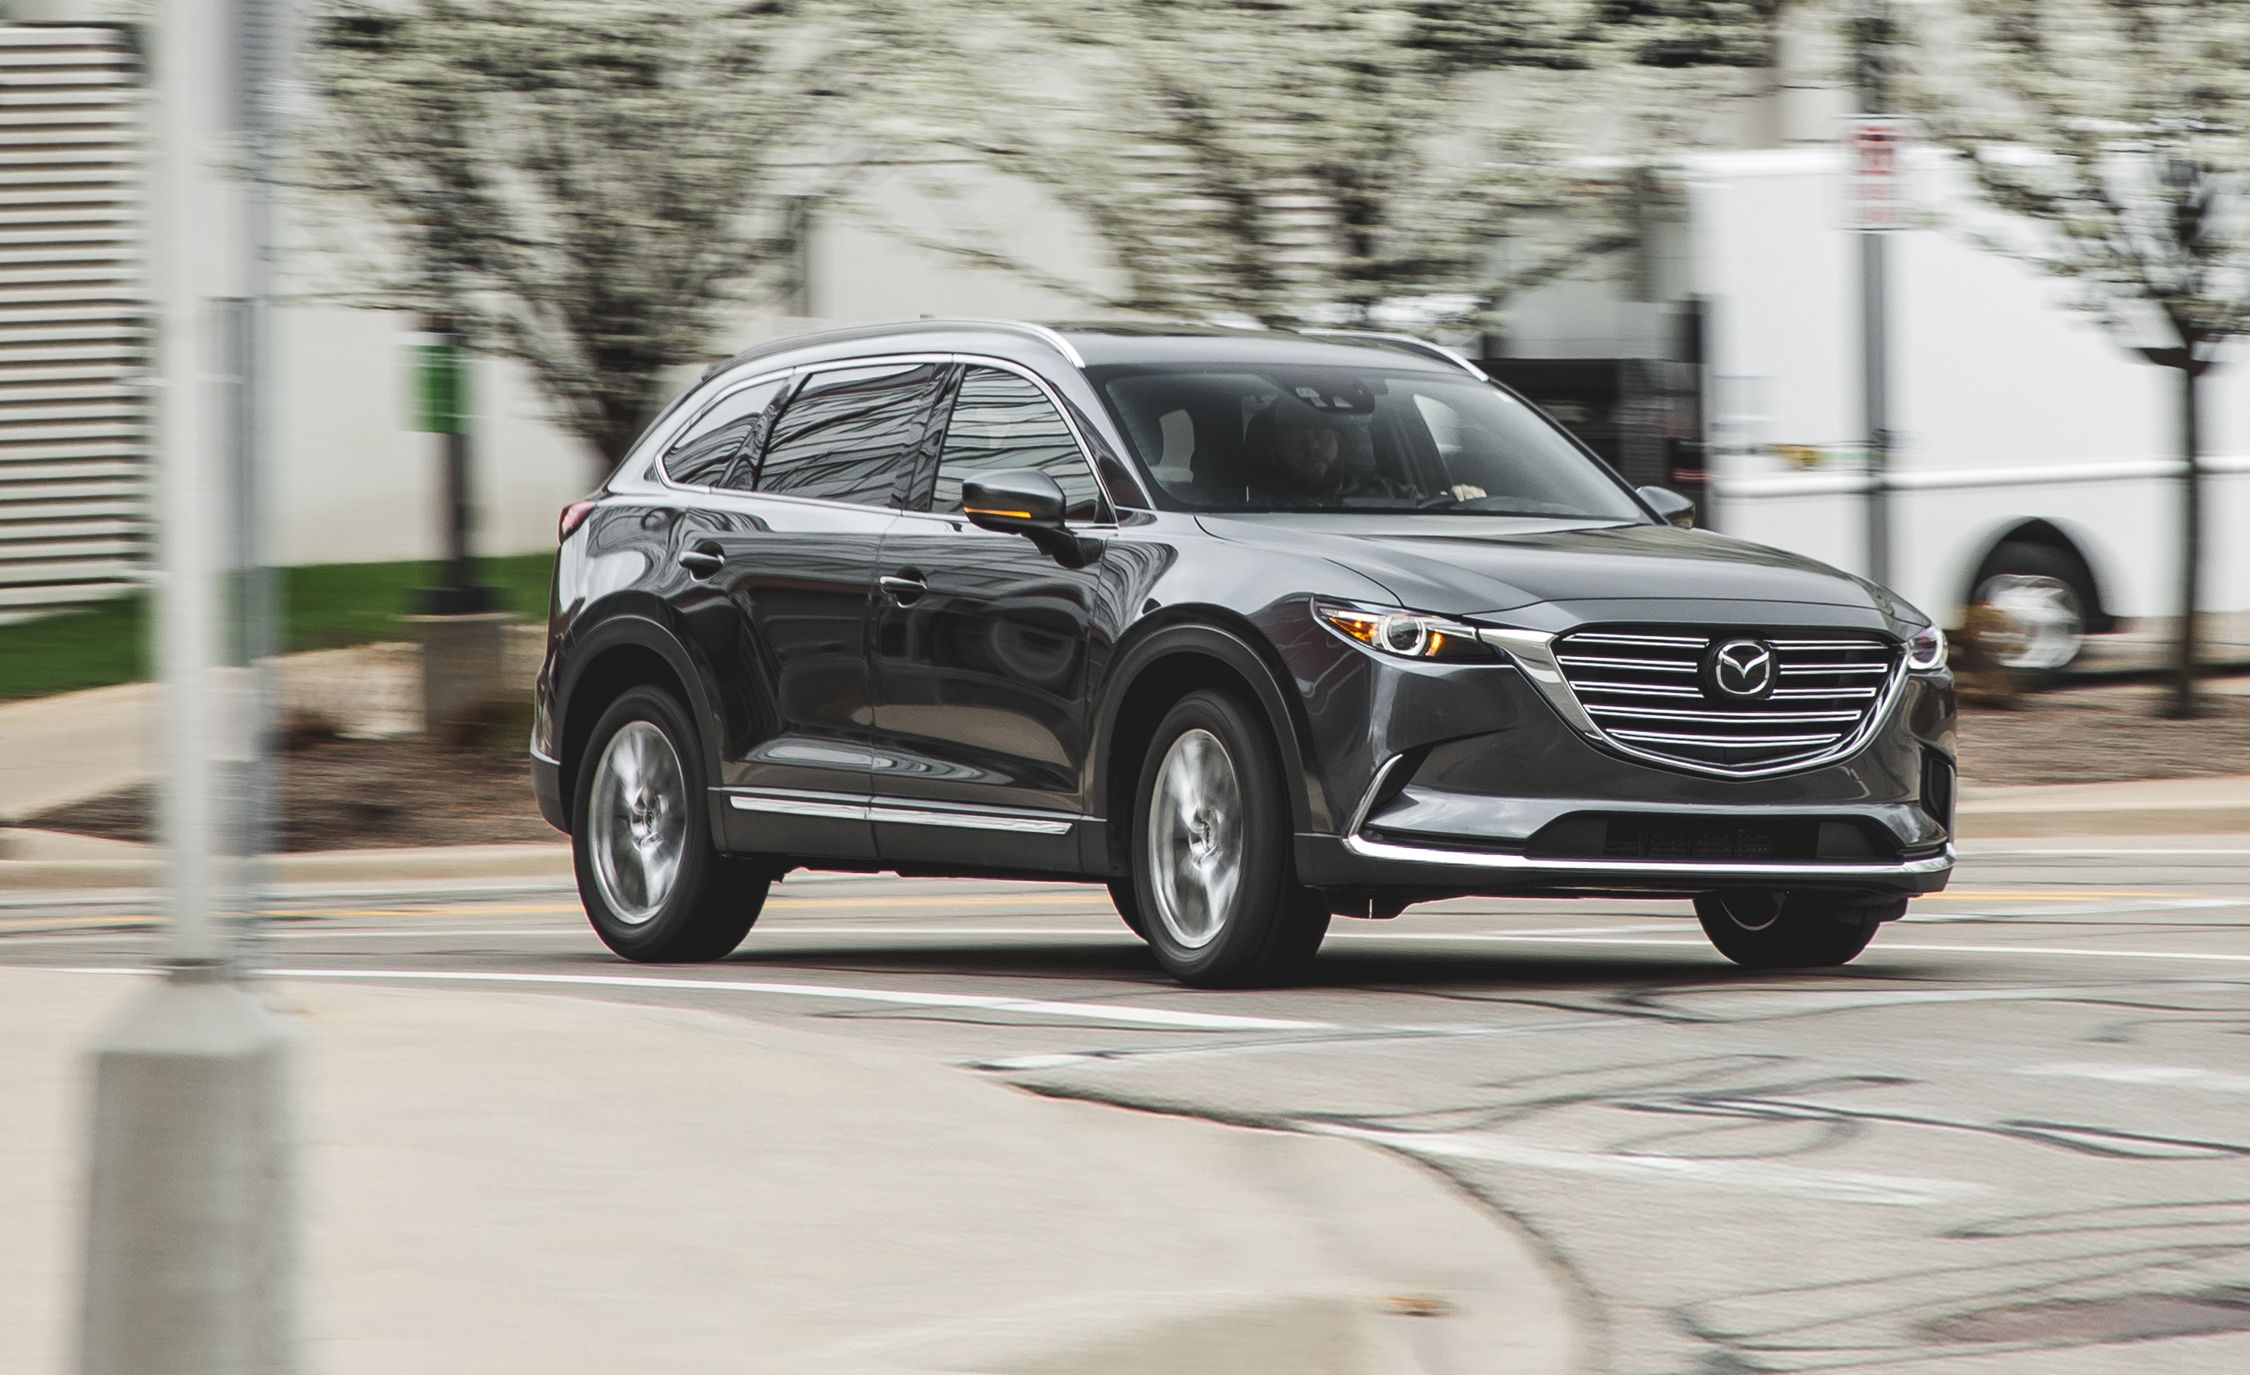 2018 mazda cx-9 | in-depth model review | car and driver